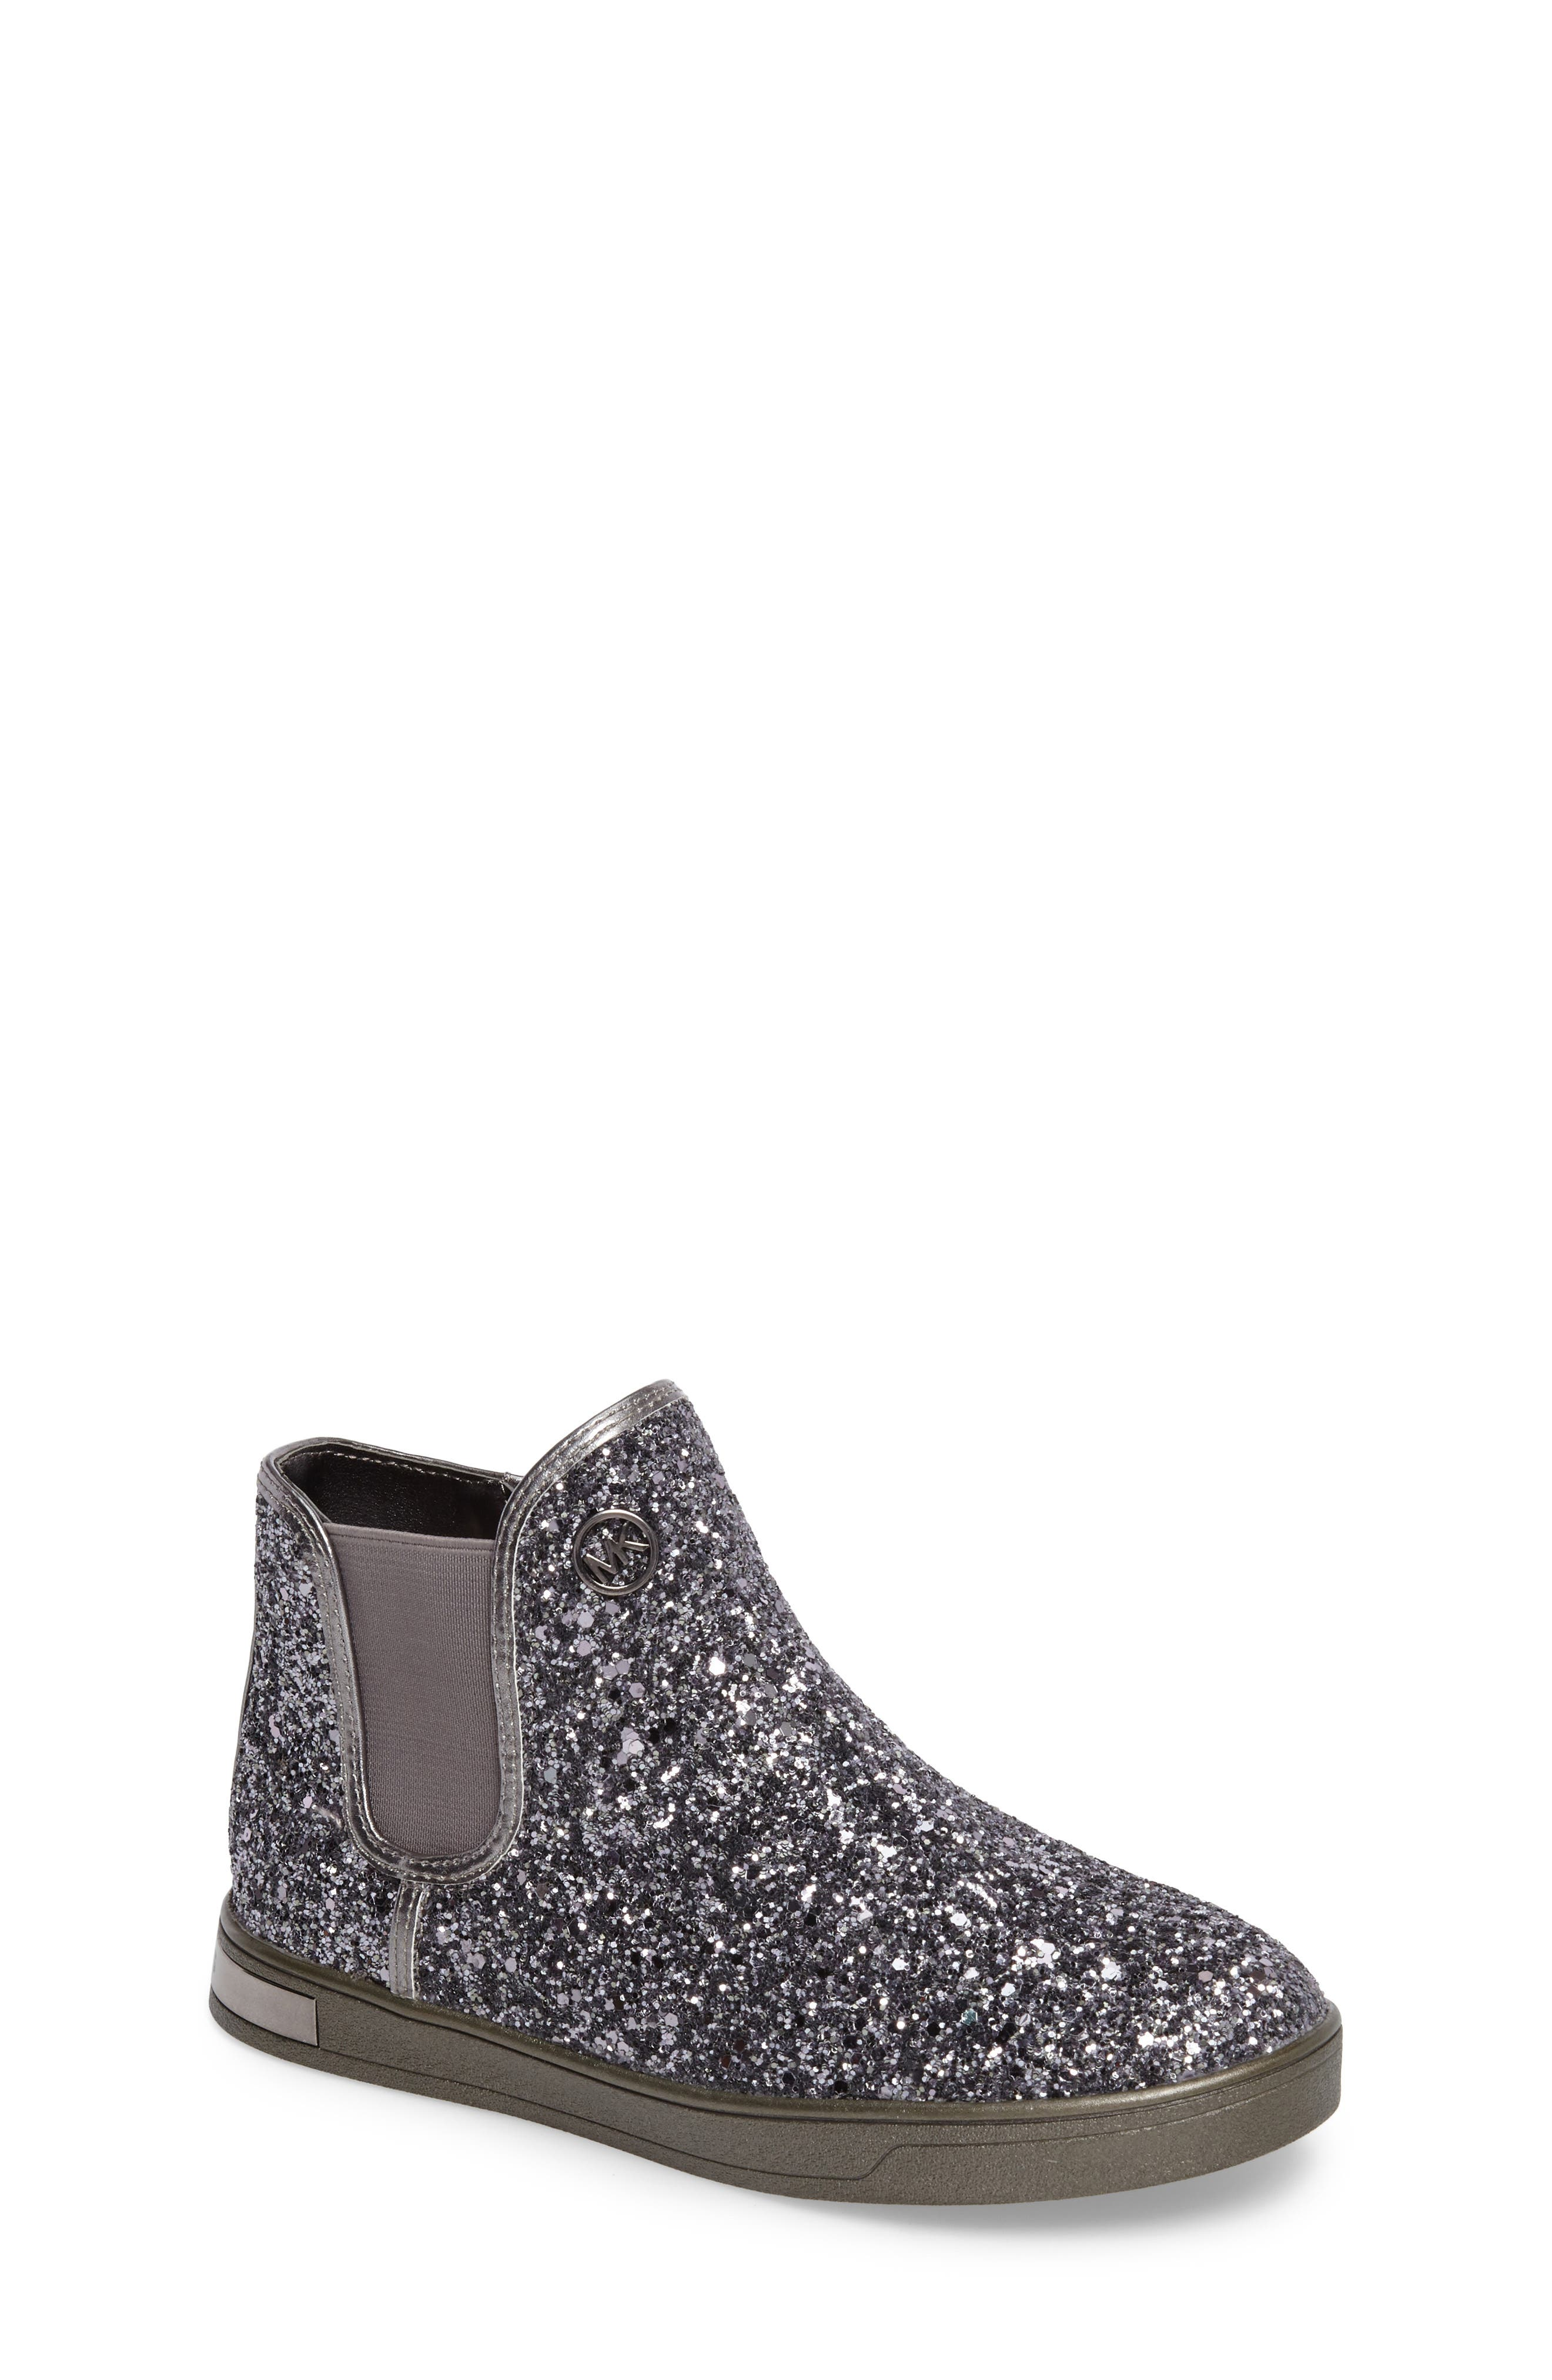 Ollie Rae Glittery Sneaker Boot,                         Main,                         color, 040